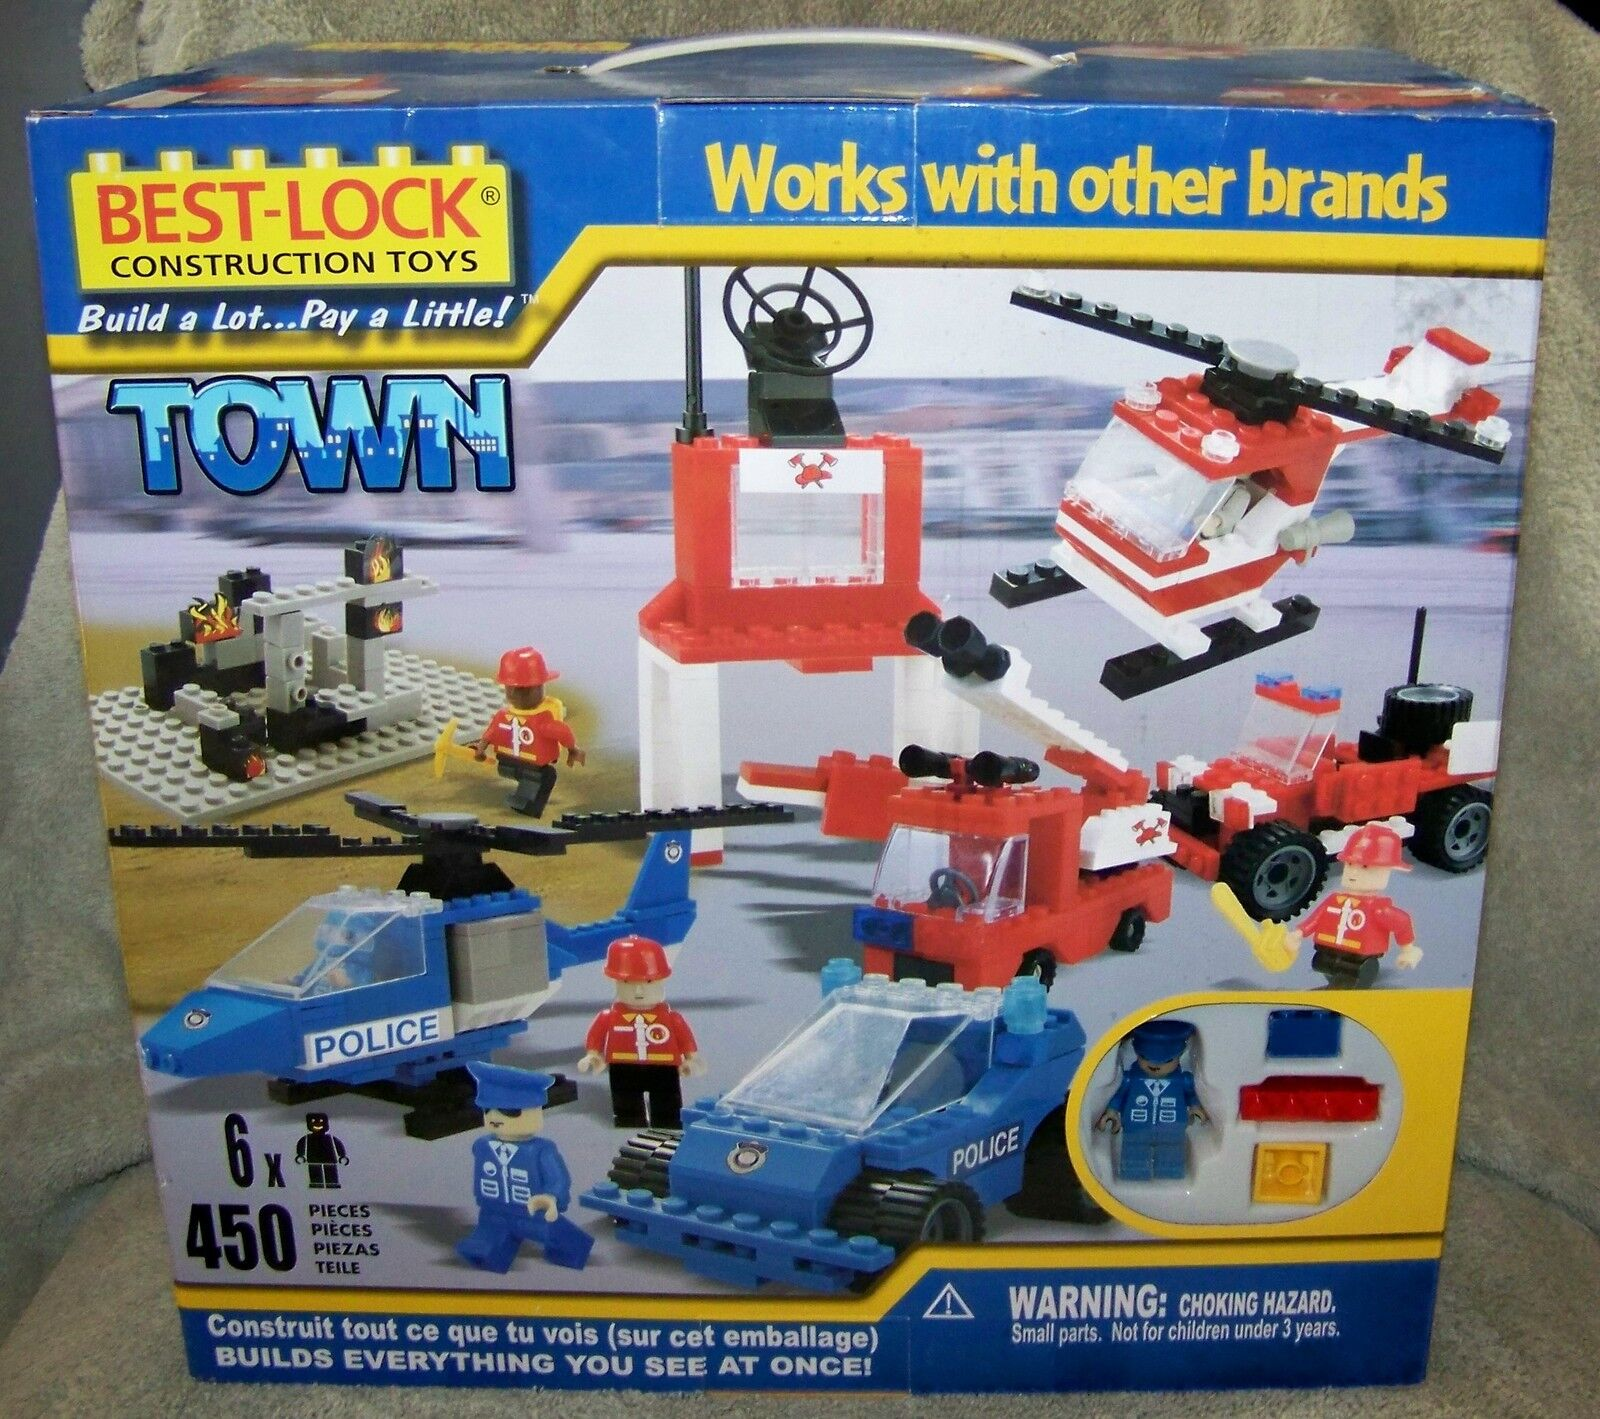 Best-lock Town Building Set 2009 Police And Fire Building Set 450 Pieces